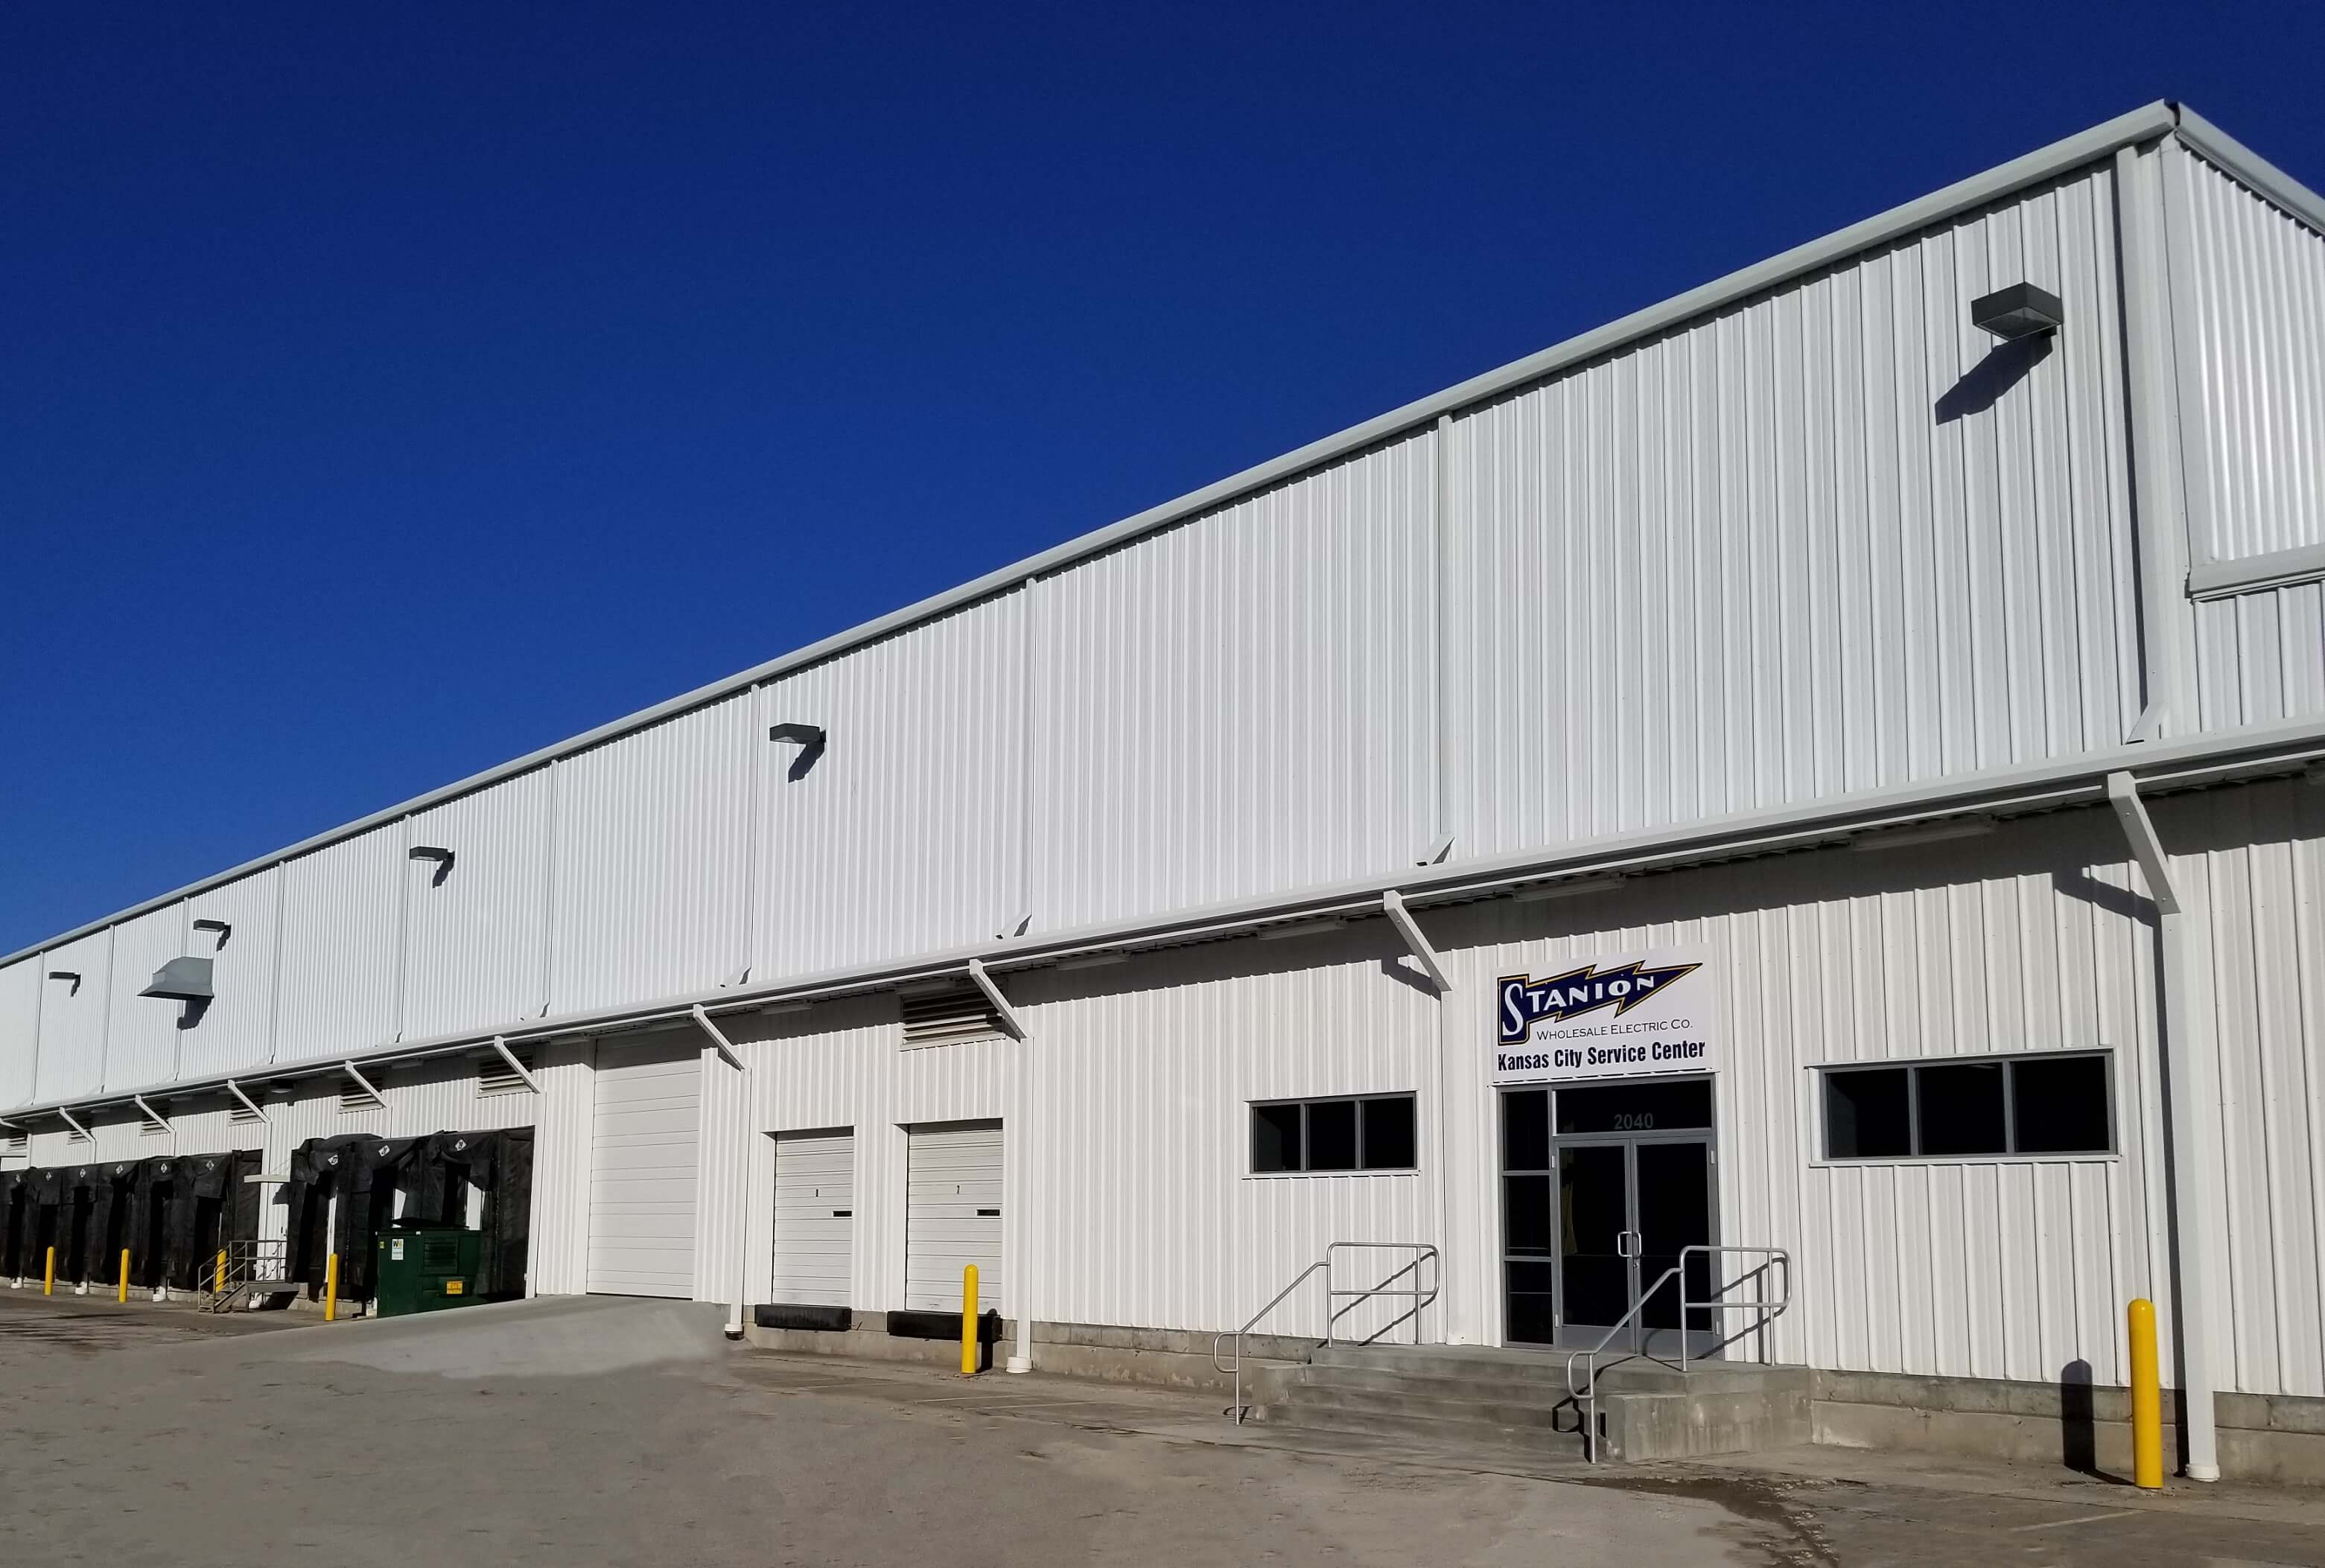 Kansas City | STANION WHOLESALE ELECTRIC